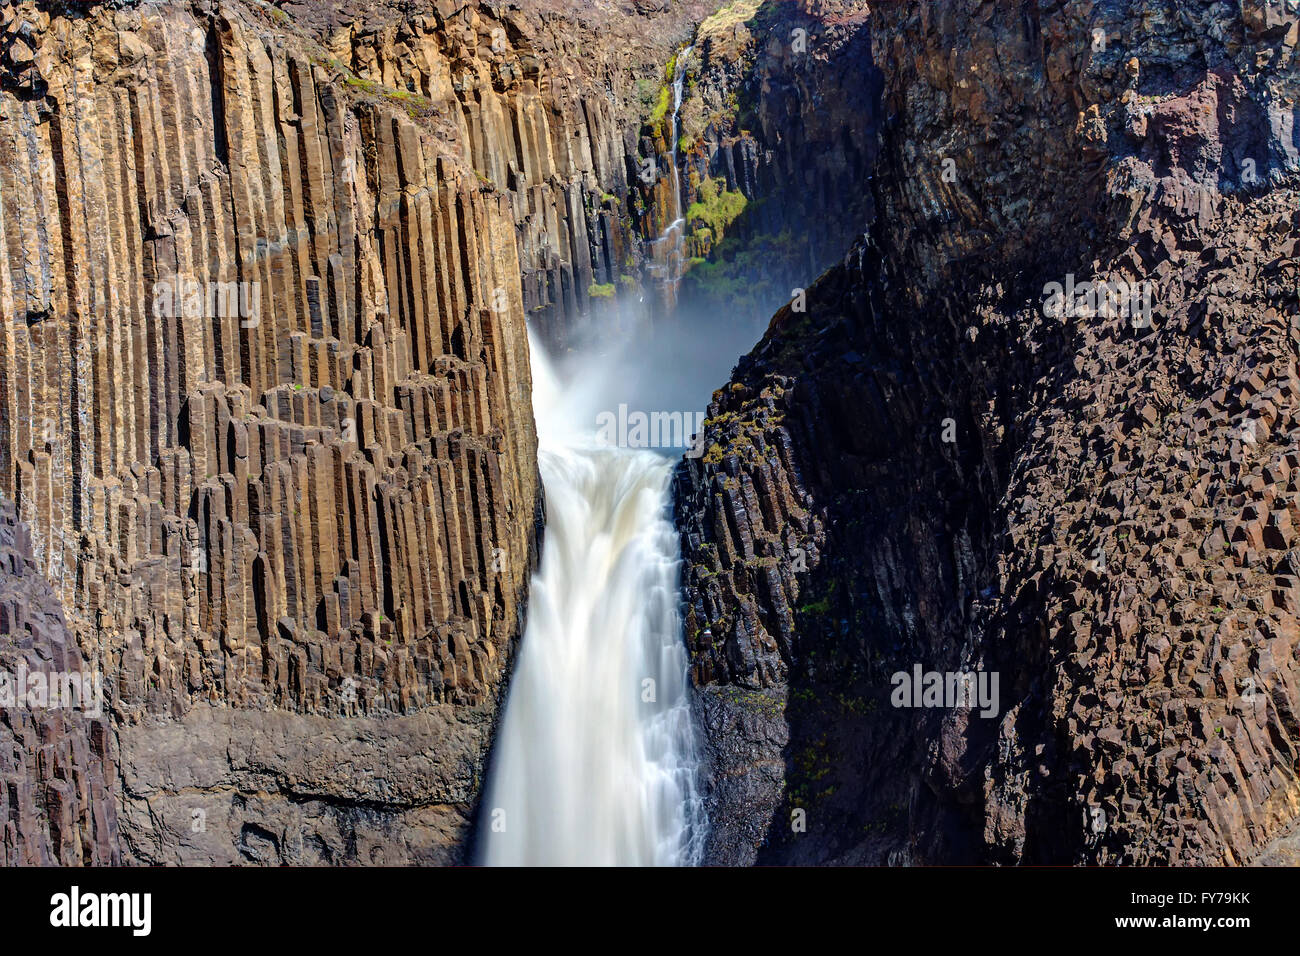 The Litlanesfoss waterfall in Iceland with its basaltic columns - Stock Image